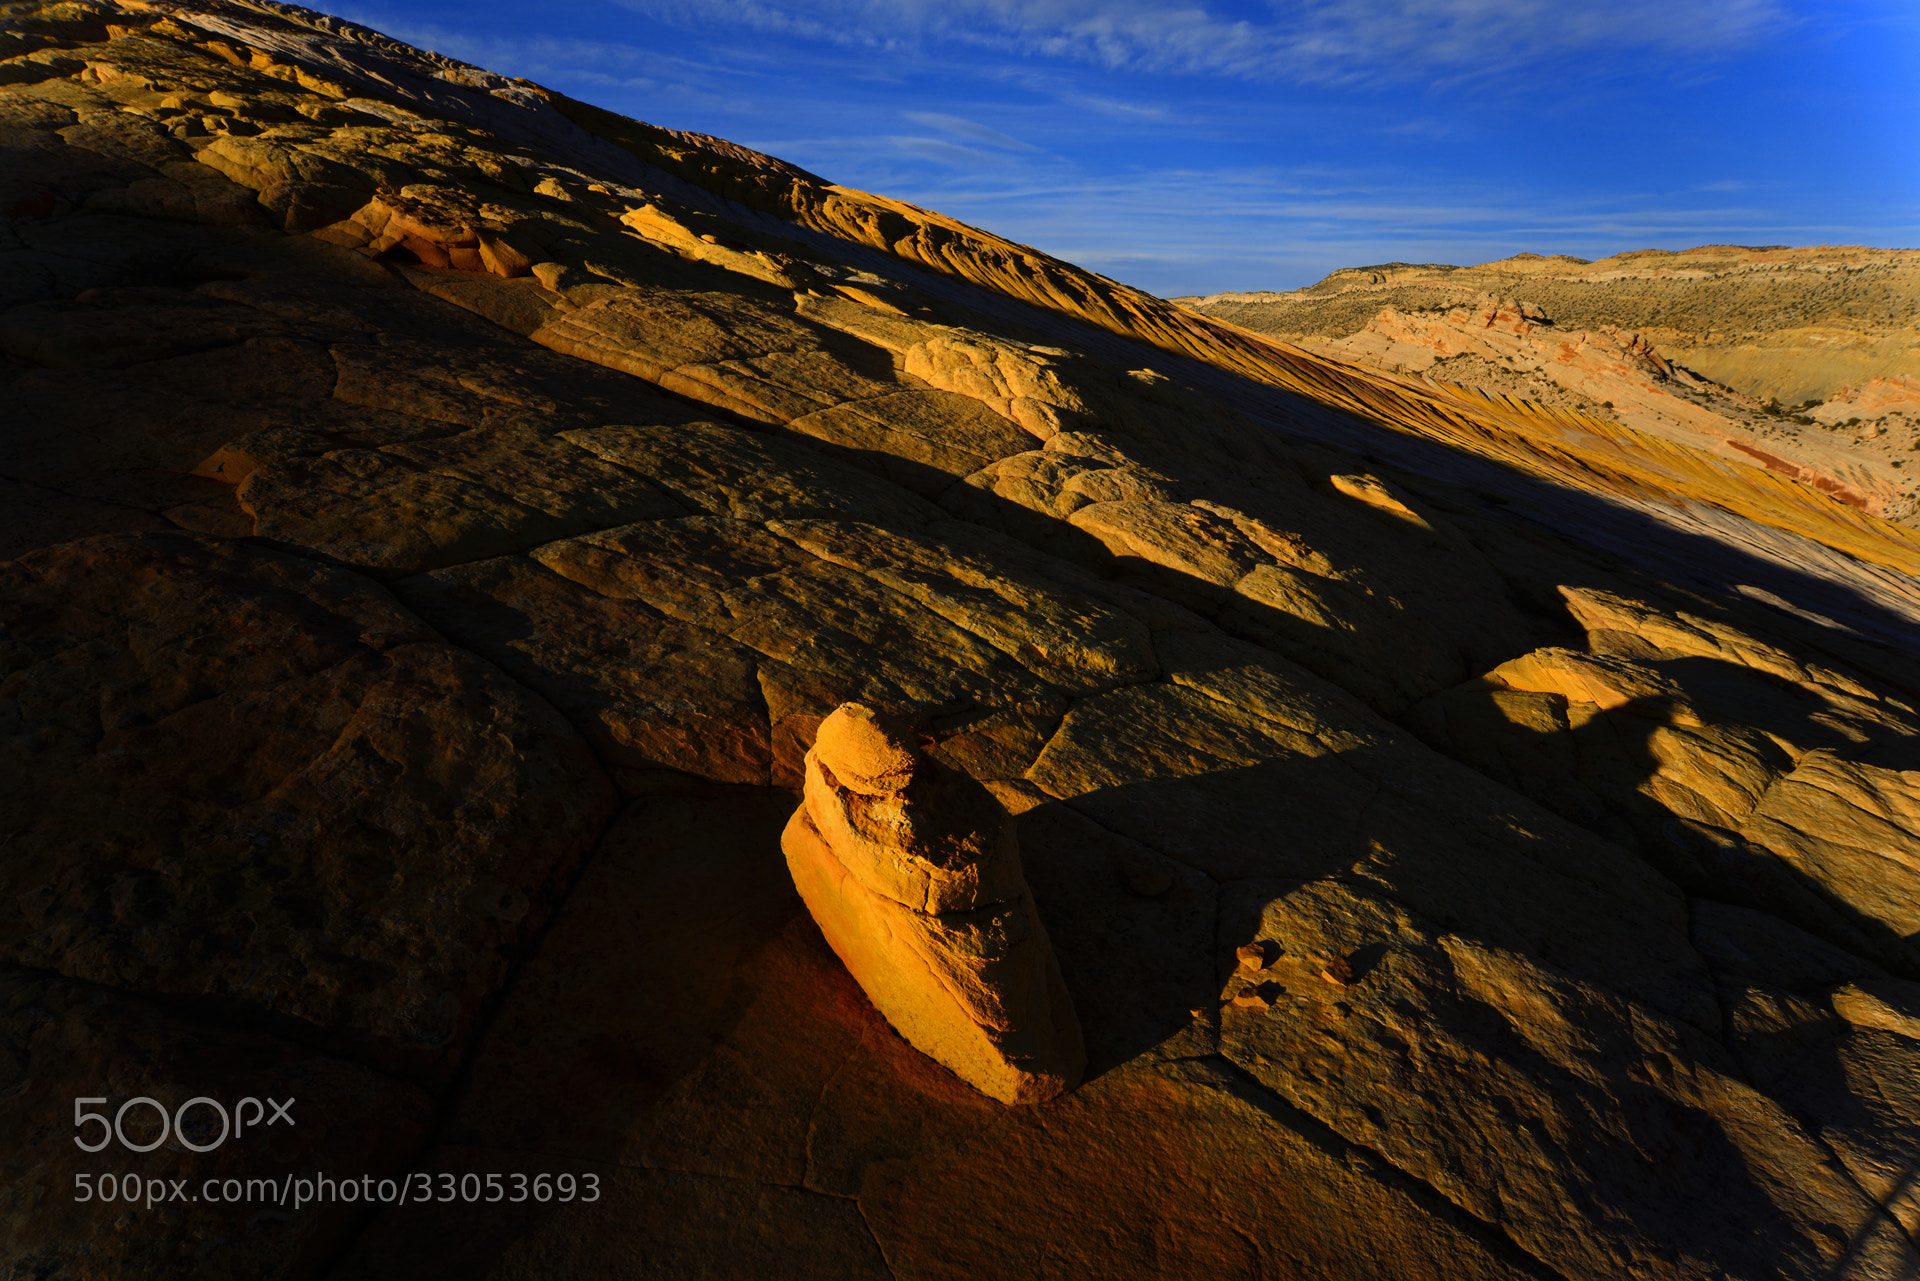 Photograph Yellow Rock by Michael Hubrich on 500px